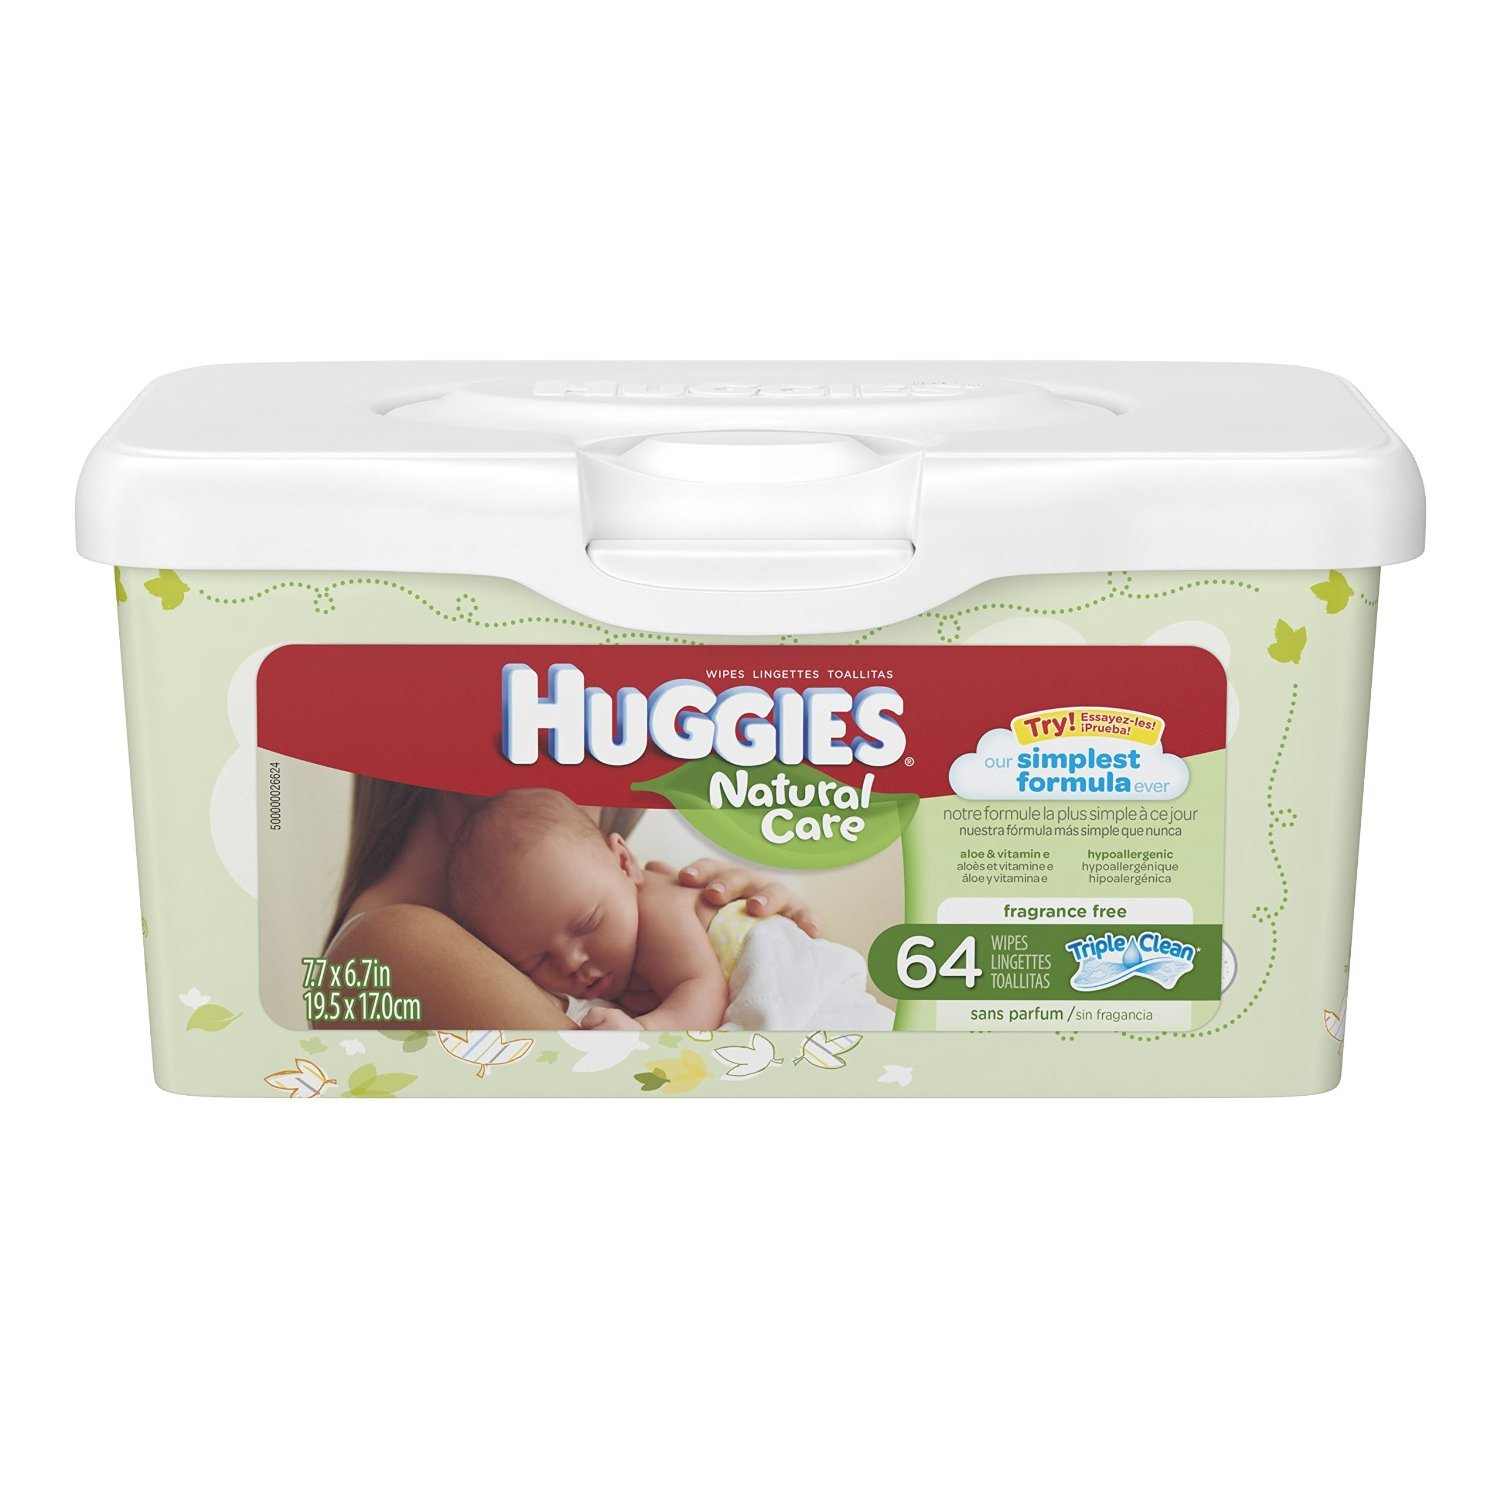 Huggies Natural Care Unscented Baby Wipes Tub - 64ct ( 2-pack)